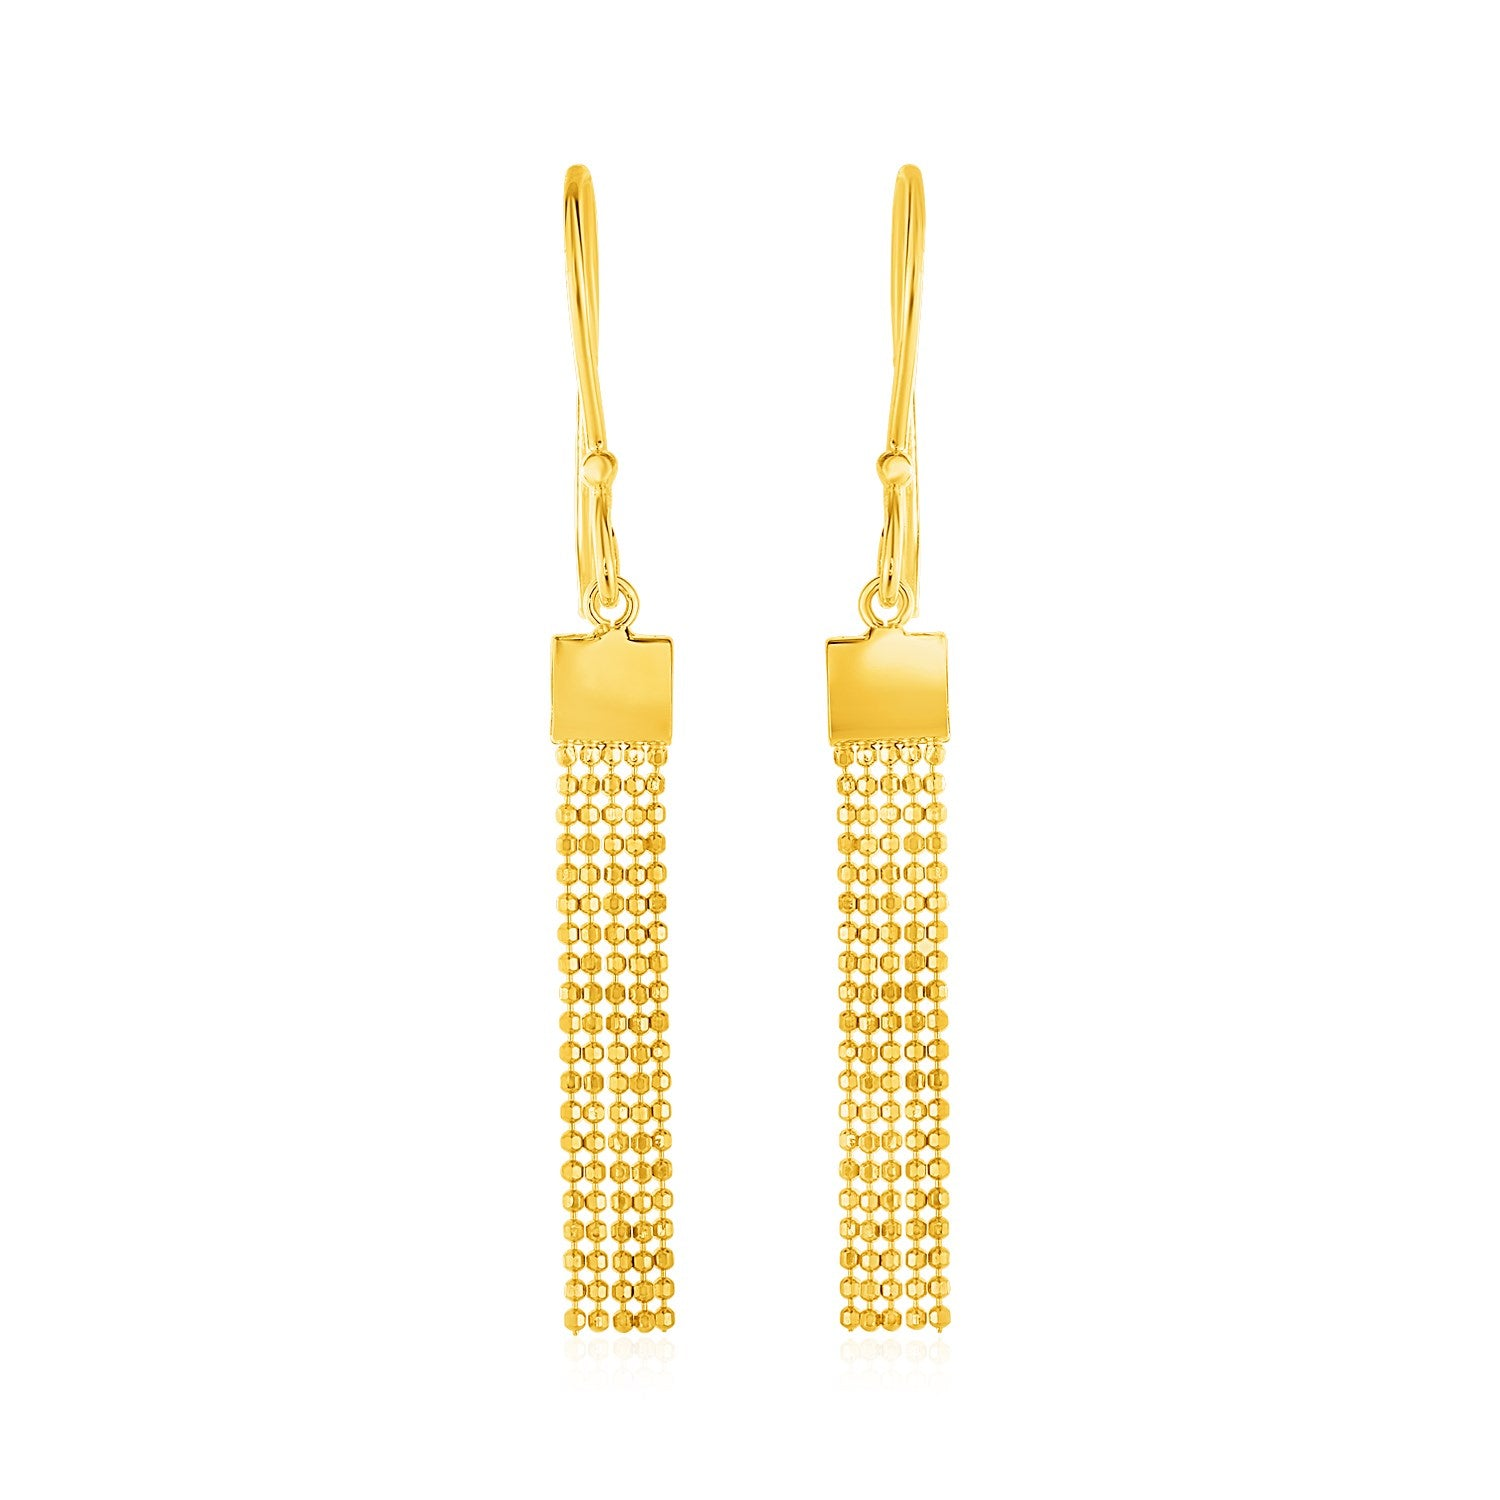 Earrings with Square Chain Tassels in 14K Yellow Gold